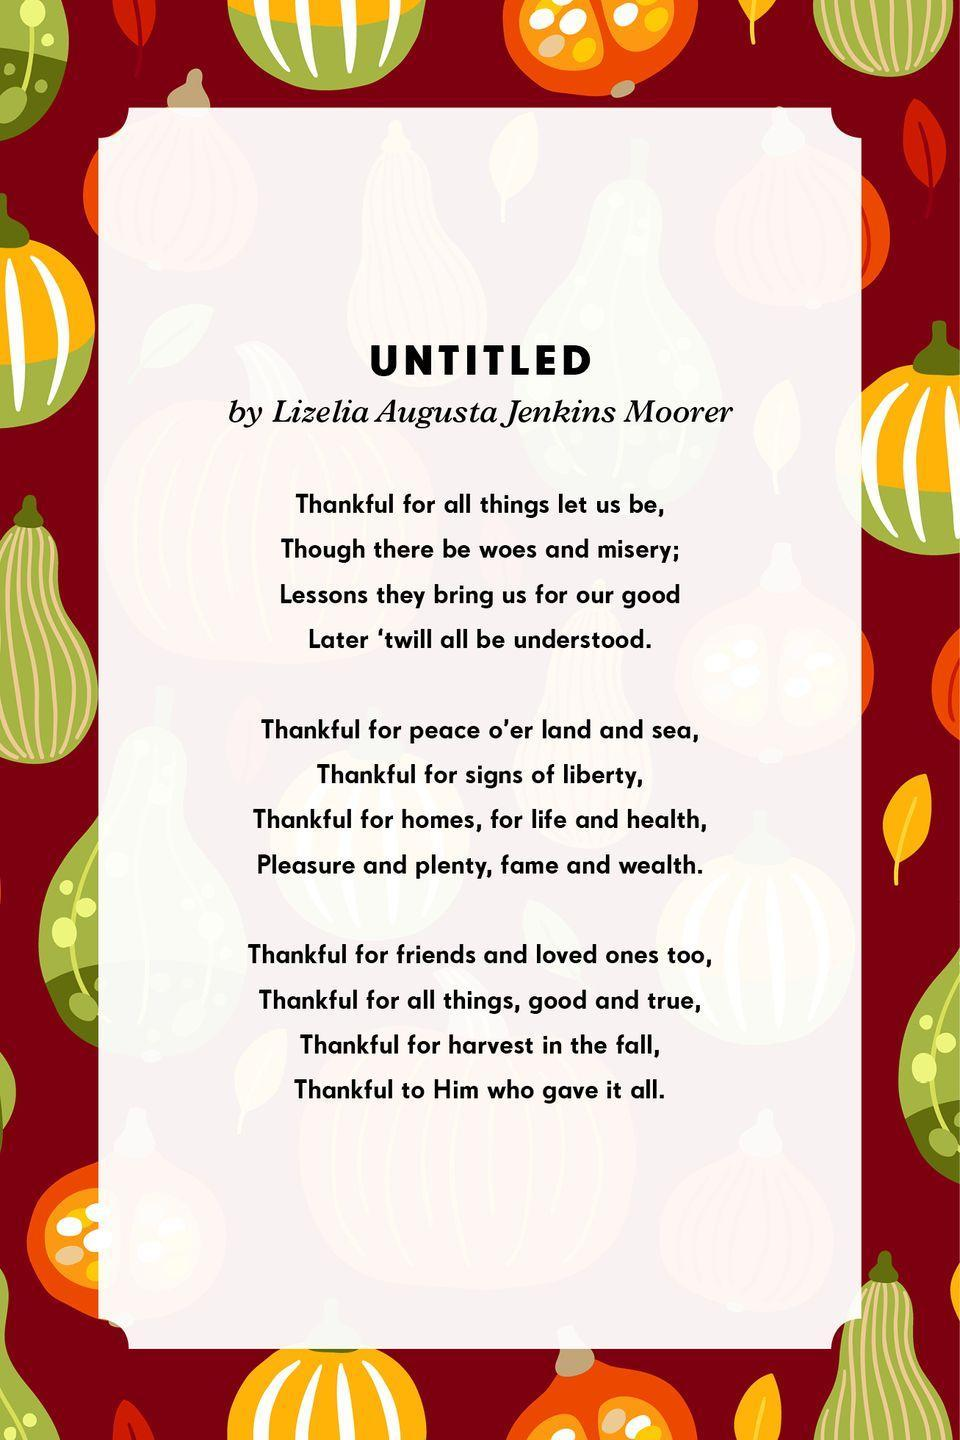 <p>Thankful for all things let us be,<br>Though there be woes and misery;<br>Lessons they bring us for our good<br>Later 'twill all be understood.</p><p>Thankful for peace o'er land and sea,<br>Thankful for signs of liberty,<br>Thankful for homes, for life and health,<br>Pleasure and plenty, fame and wealth.</p><p>Thankful for friends and loved ones too,<br>Thankful for all things, good and true,<br>Thankful for harvest in the fall,<br>Thankful to Him who gave it all.</p>